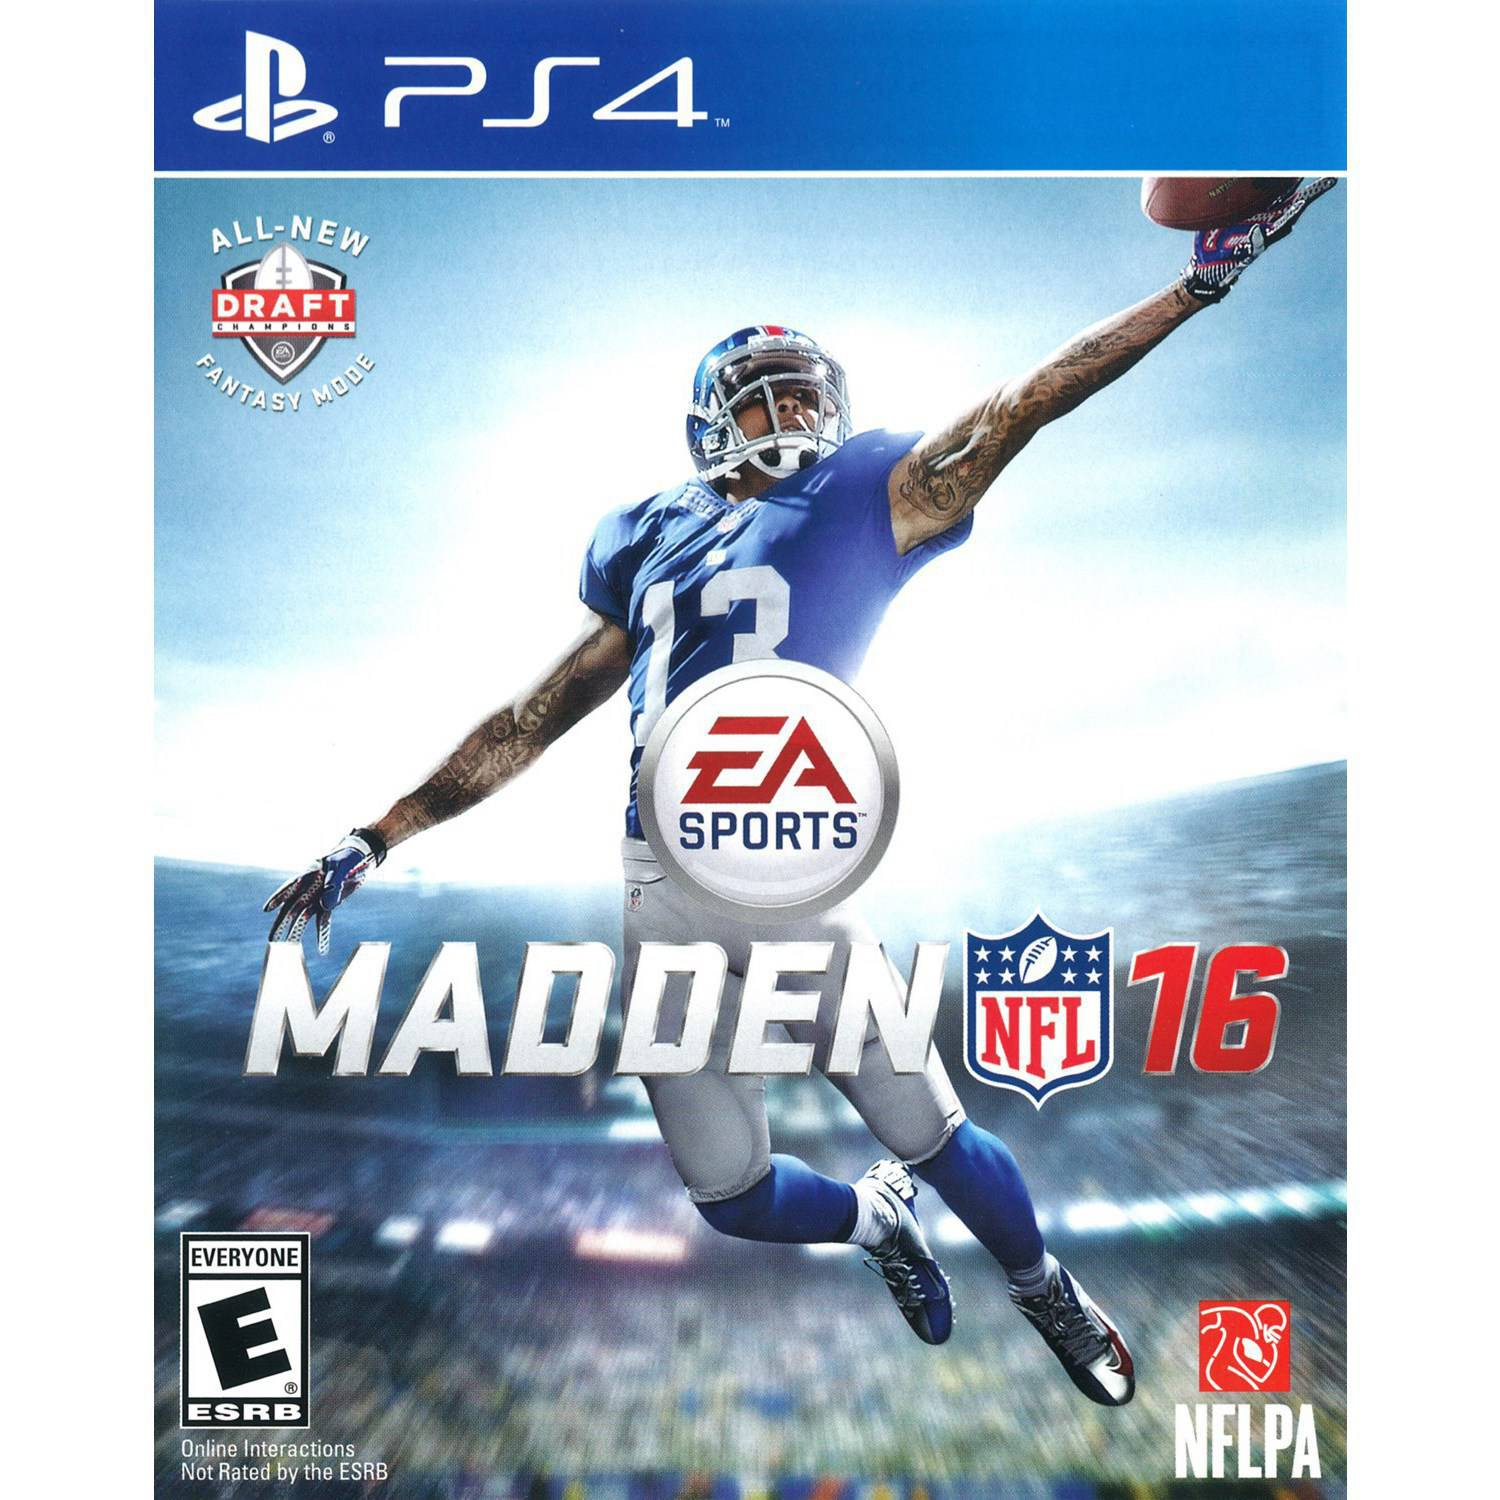 Madden NFL 16, Electronic Arts, PlayStation 4, 014633733808